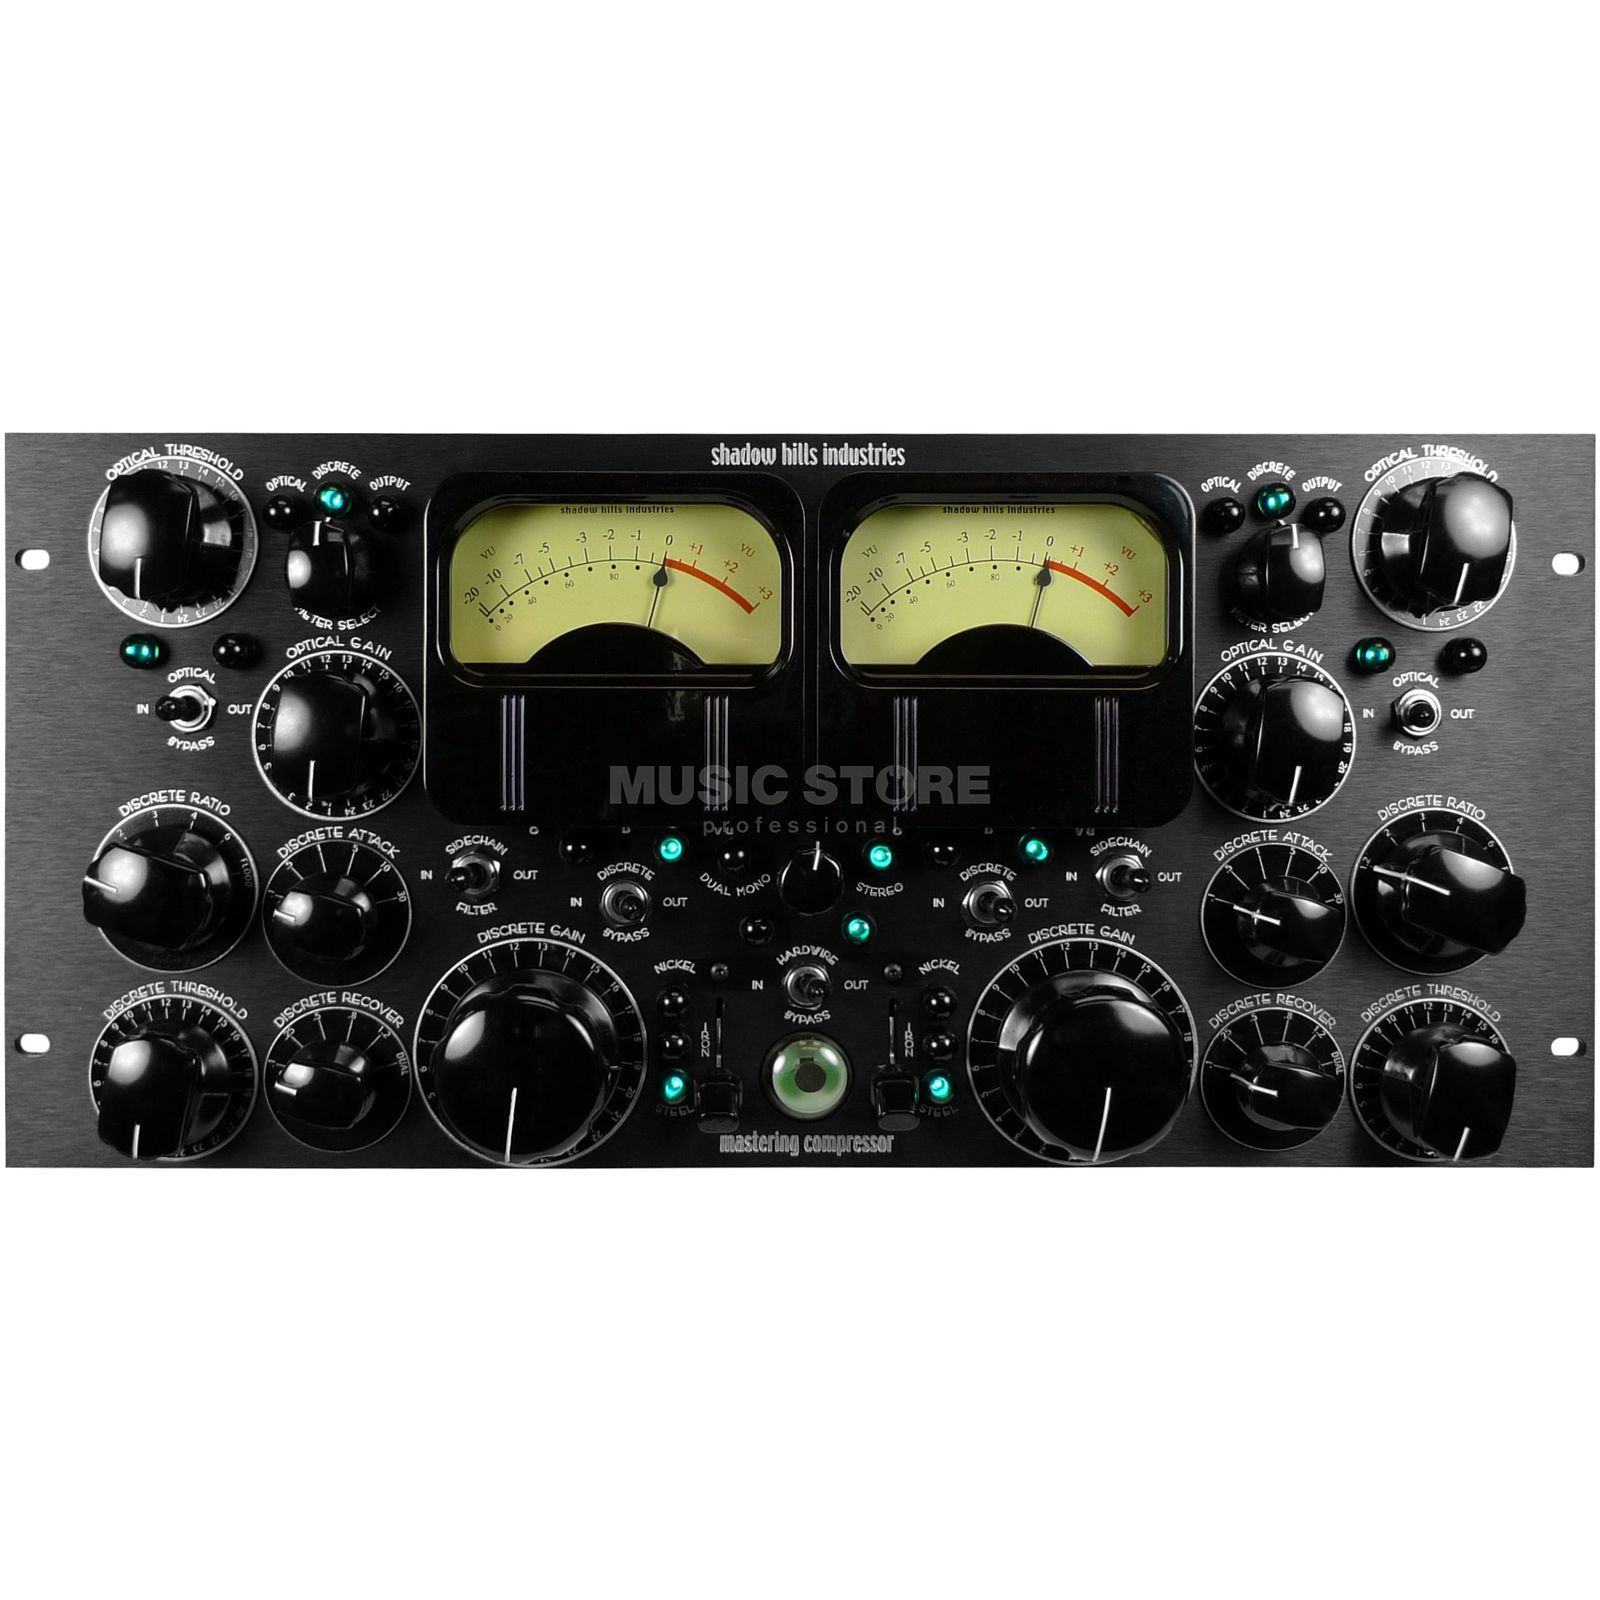 Shadow Hills Industries Mastering Compressor Electro Optical Compressor Product Image